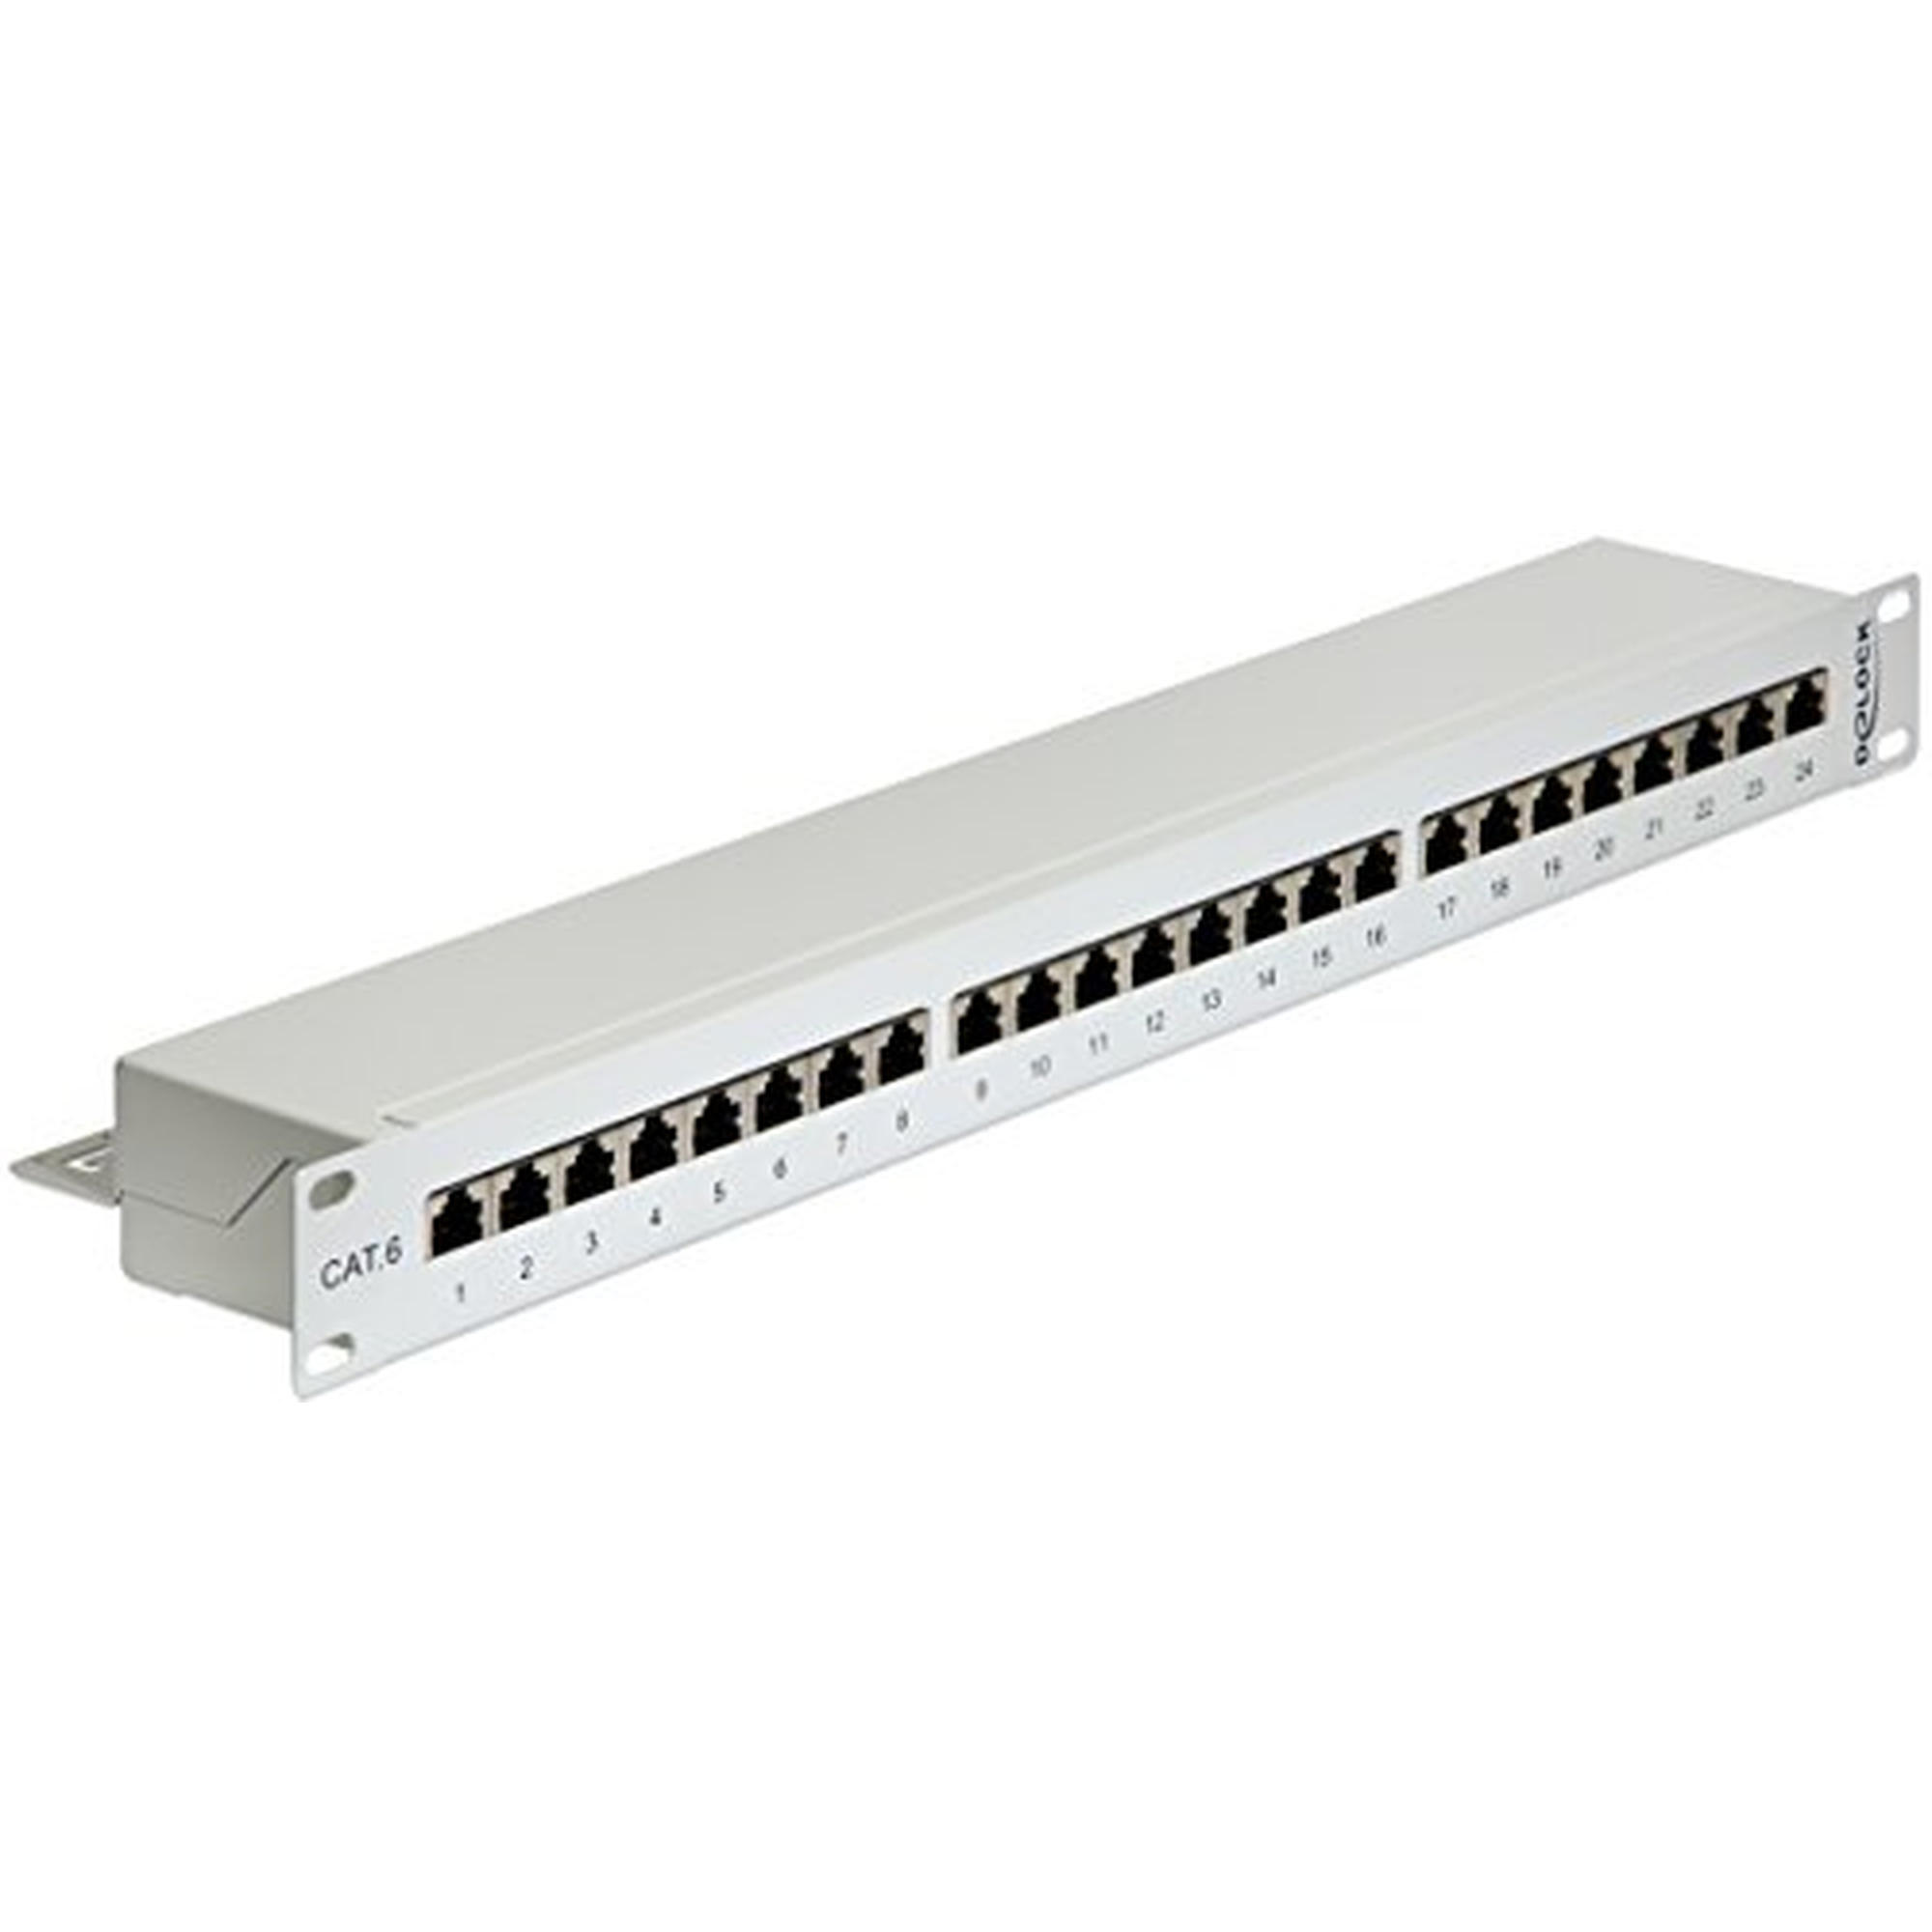 DeLOCK 19 Patchpanel 24 Port Cat.6, grau